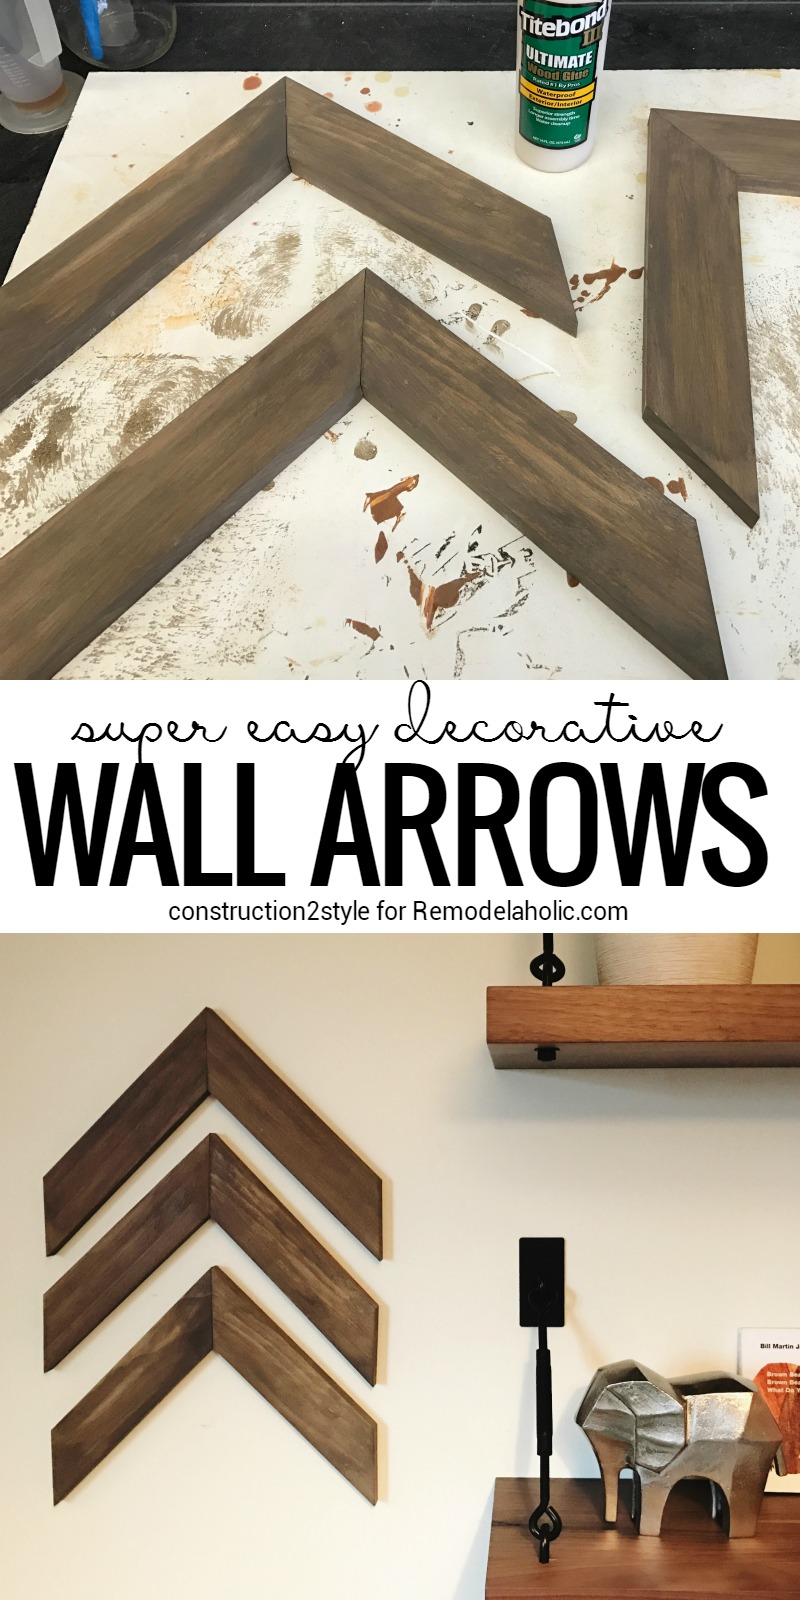 Brand-new Remodelaholic | Easy DIY Wooden Arrow Wall Decor Tutorial VP02